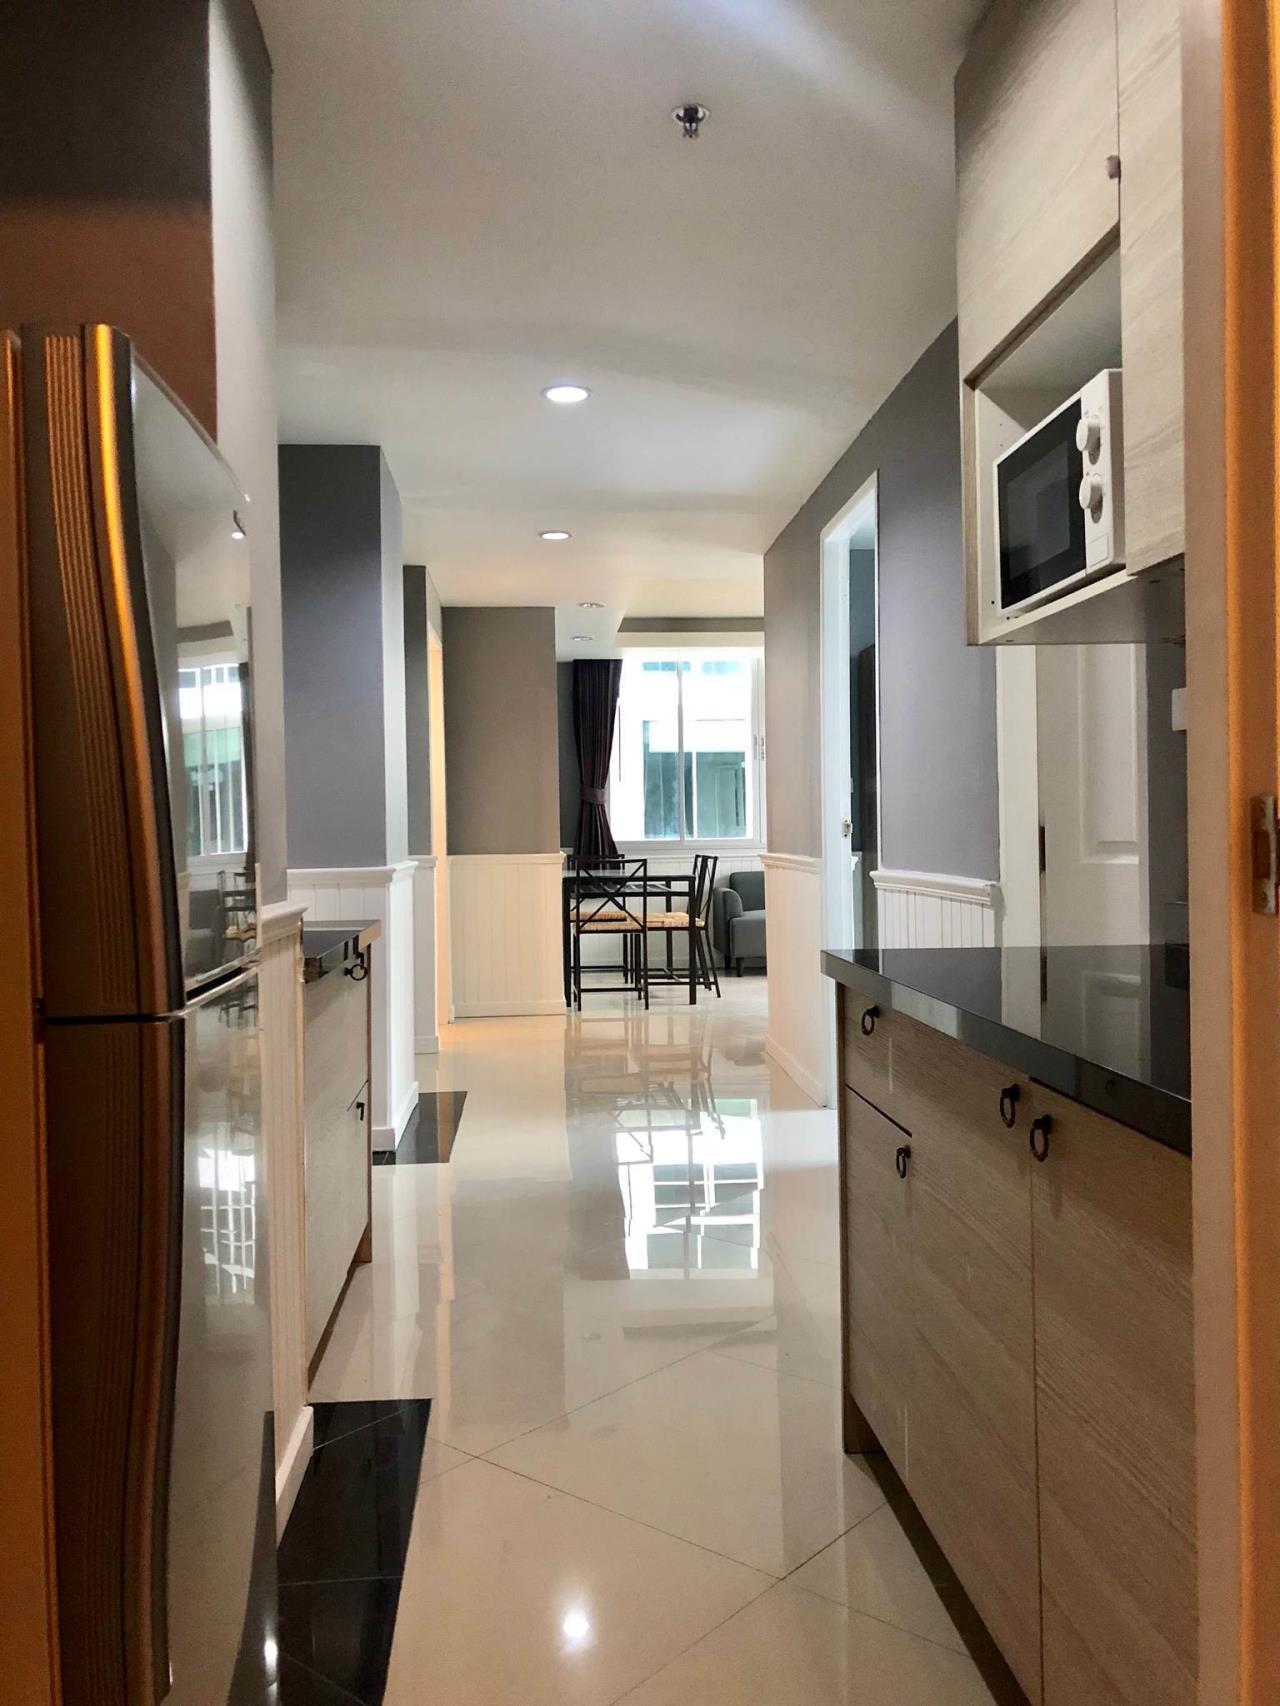 Bestbkkcondos Agency's Waterford Sukhumvit 50 - 74 sqm - For Rent : 27 000 bth / month - 3 Bedrooms 6